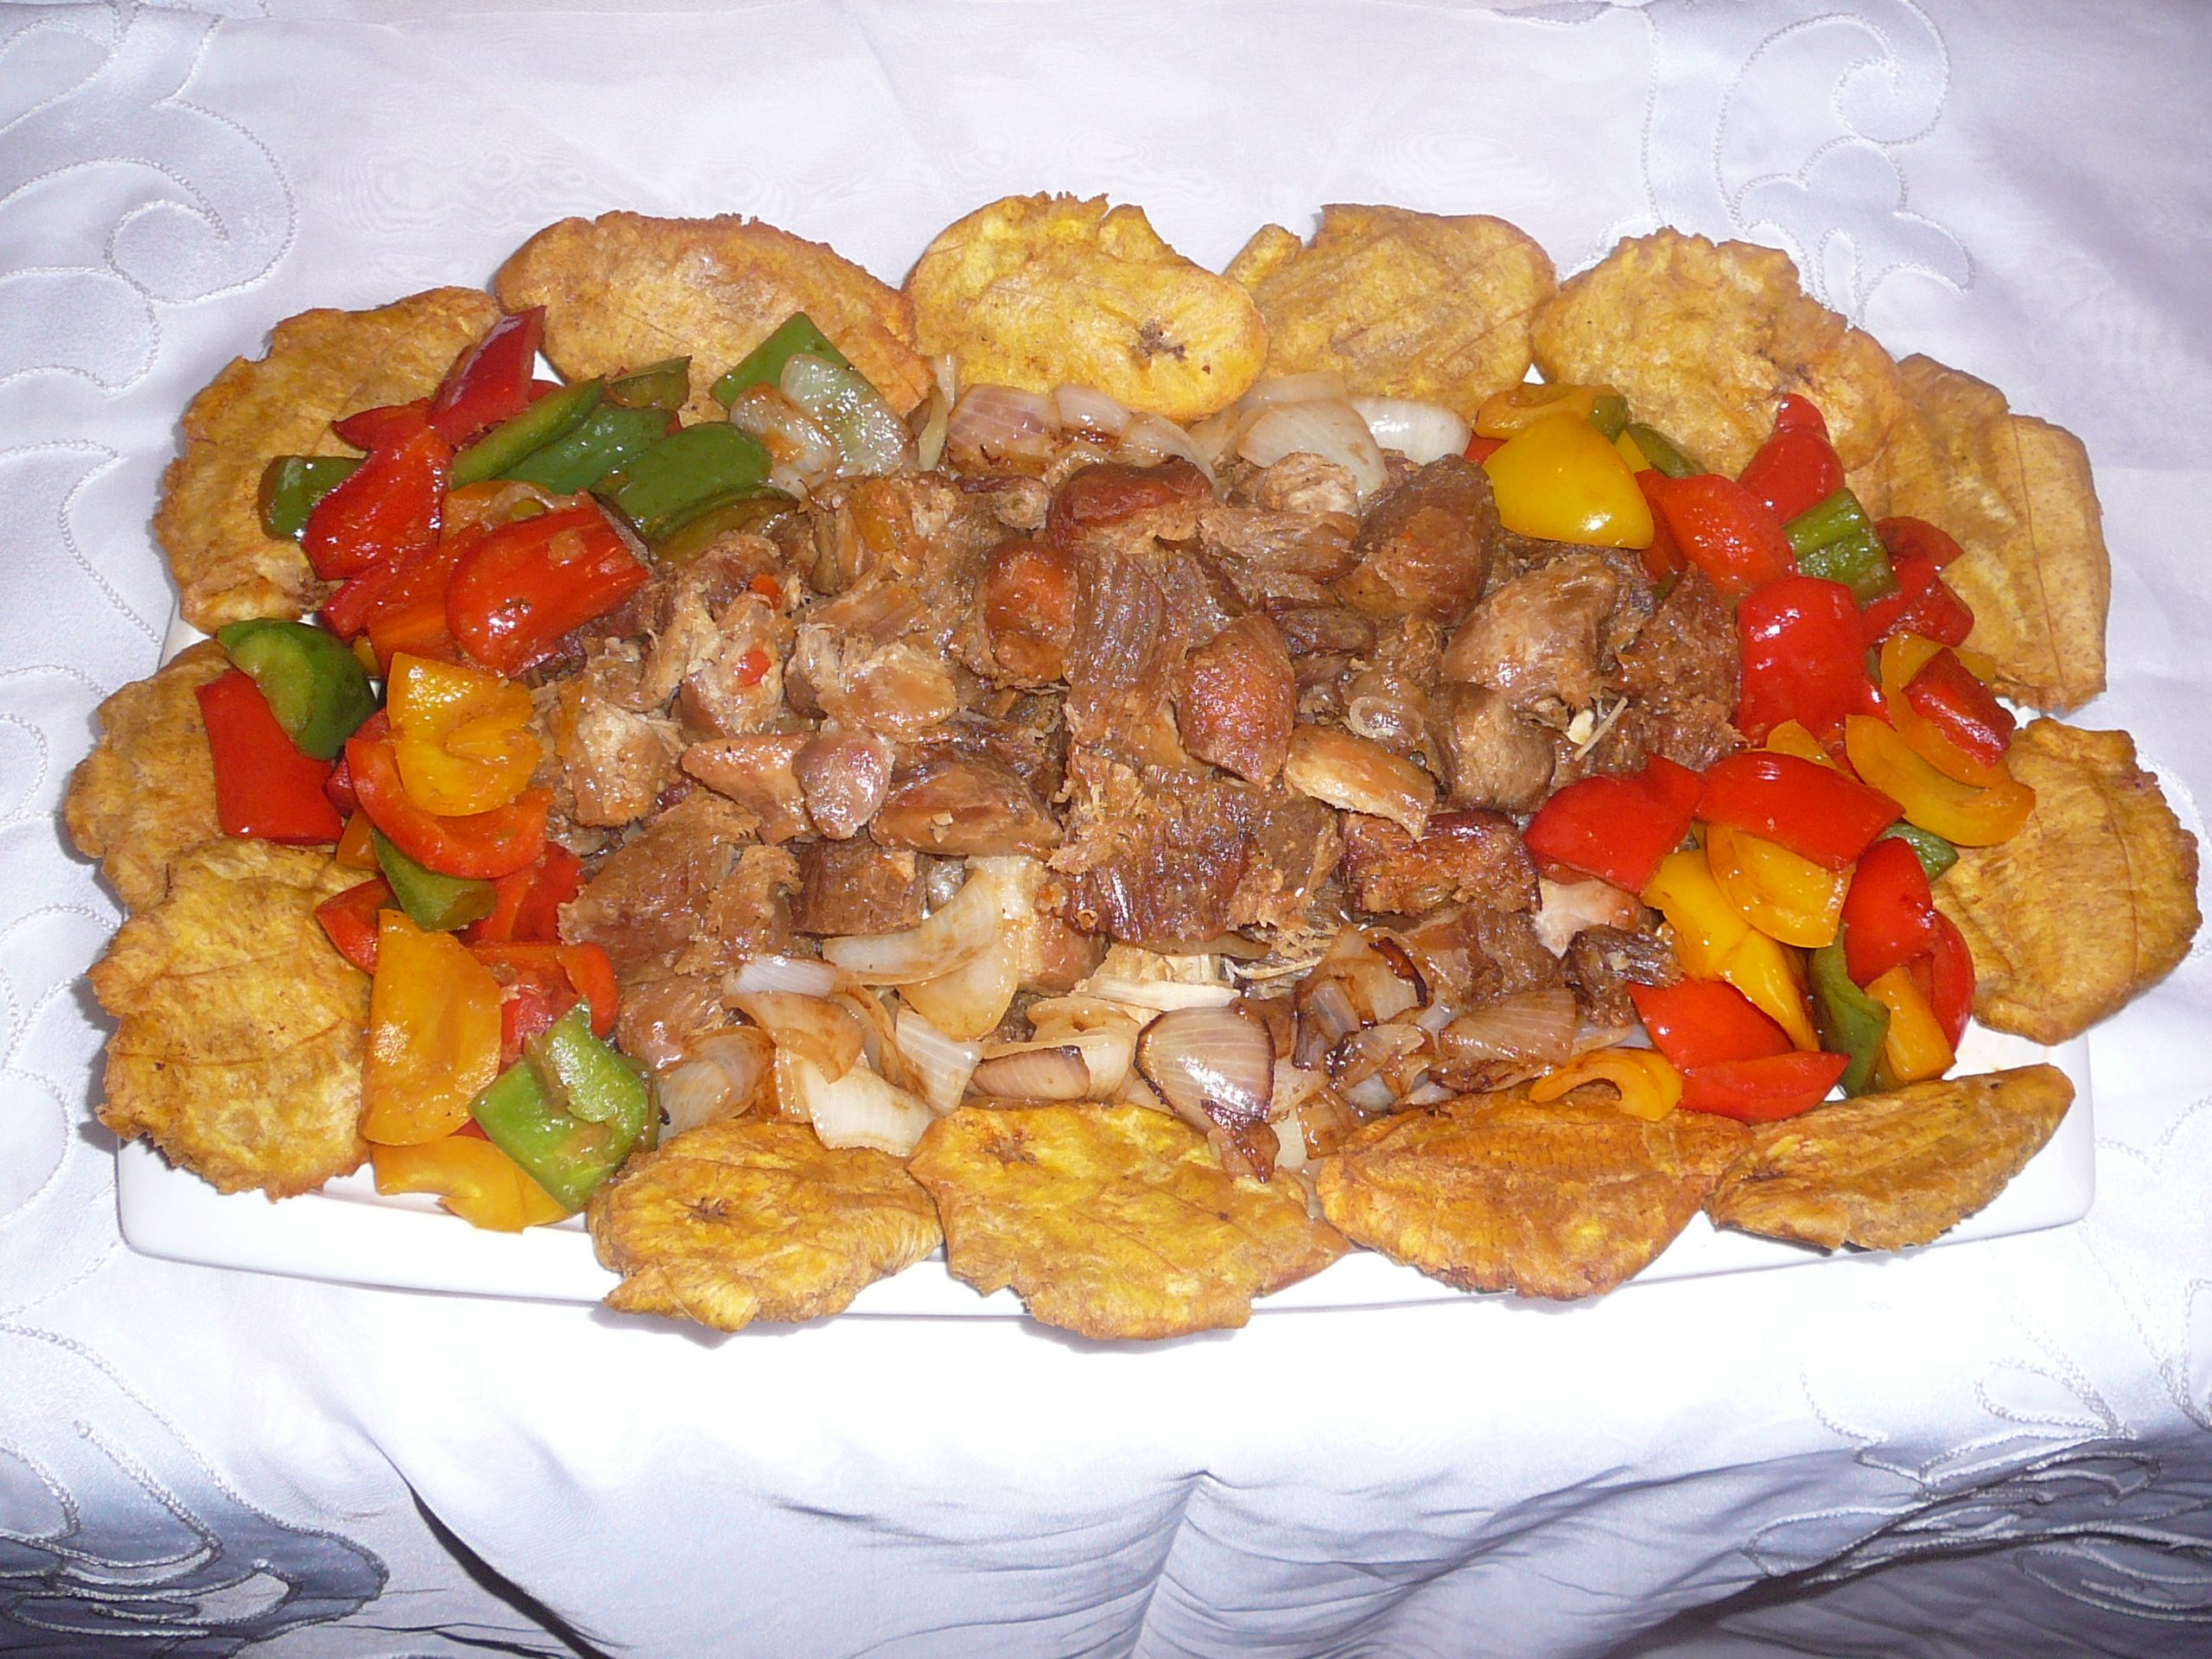 Delicious! Fried pork (Griot) and fried plantains (Banan ...